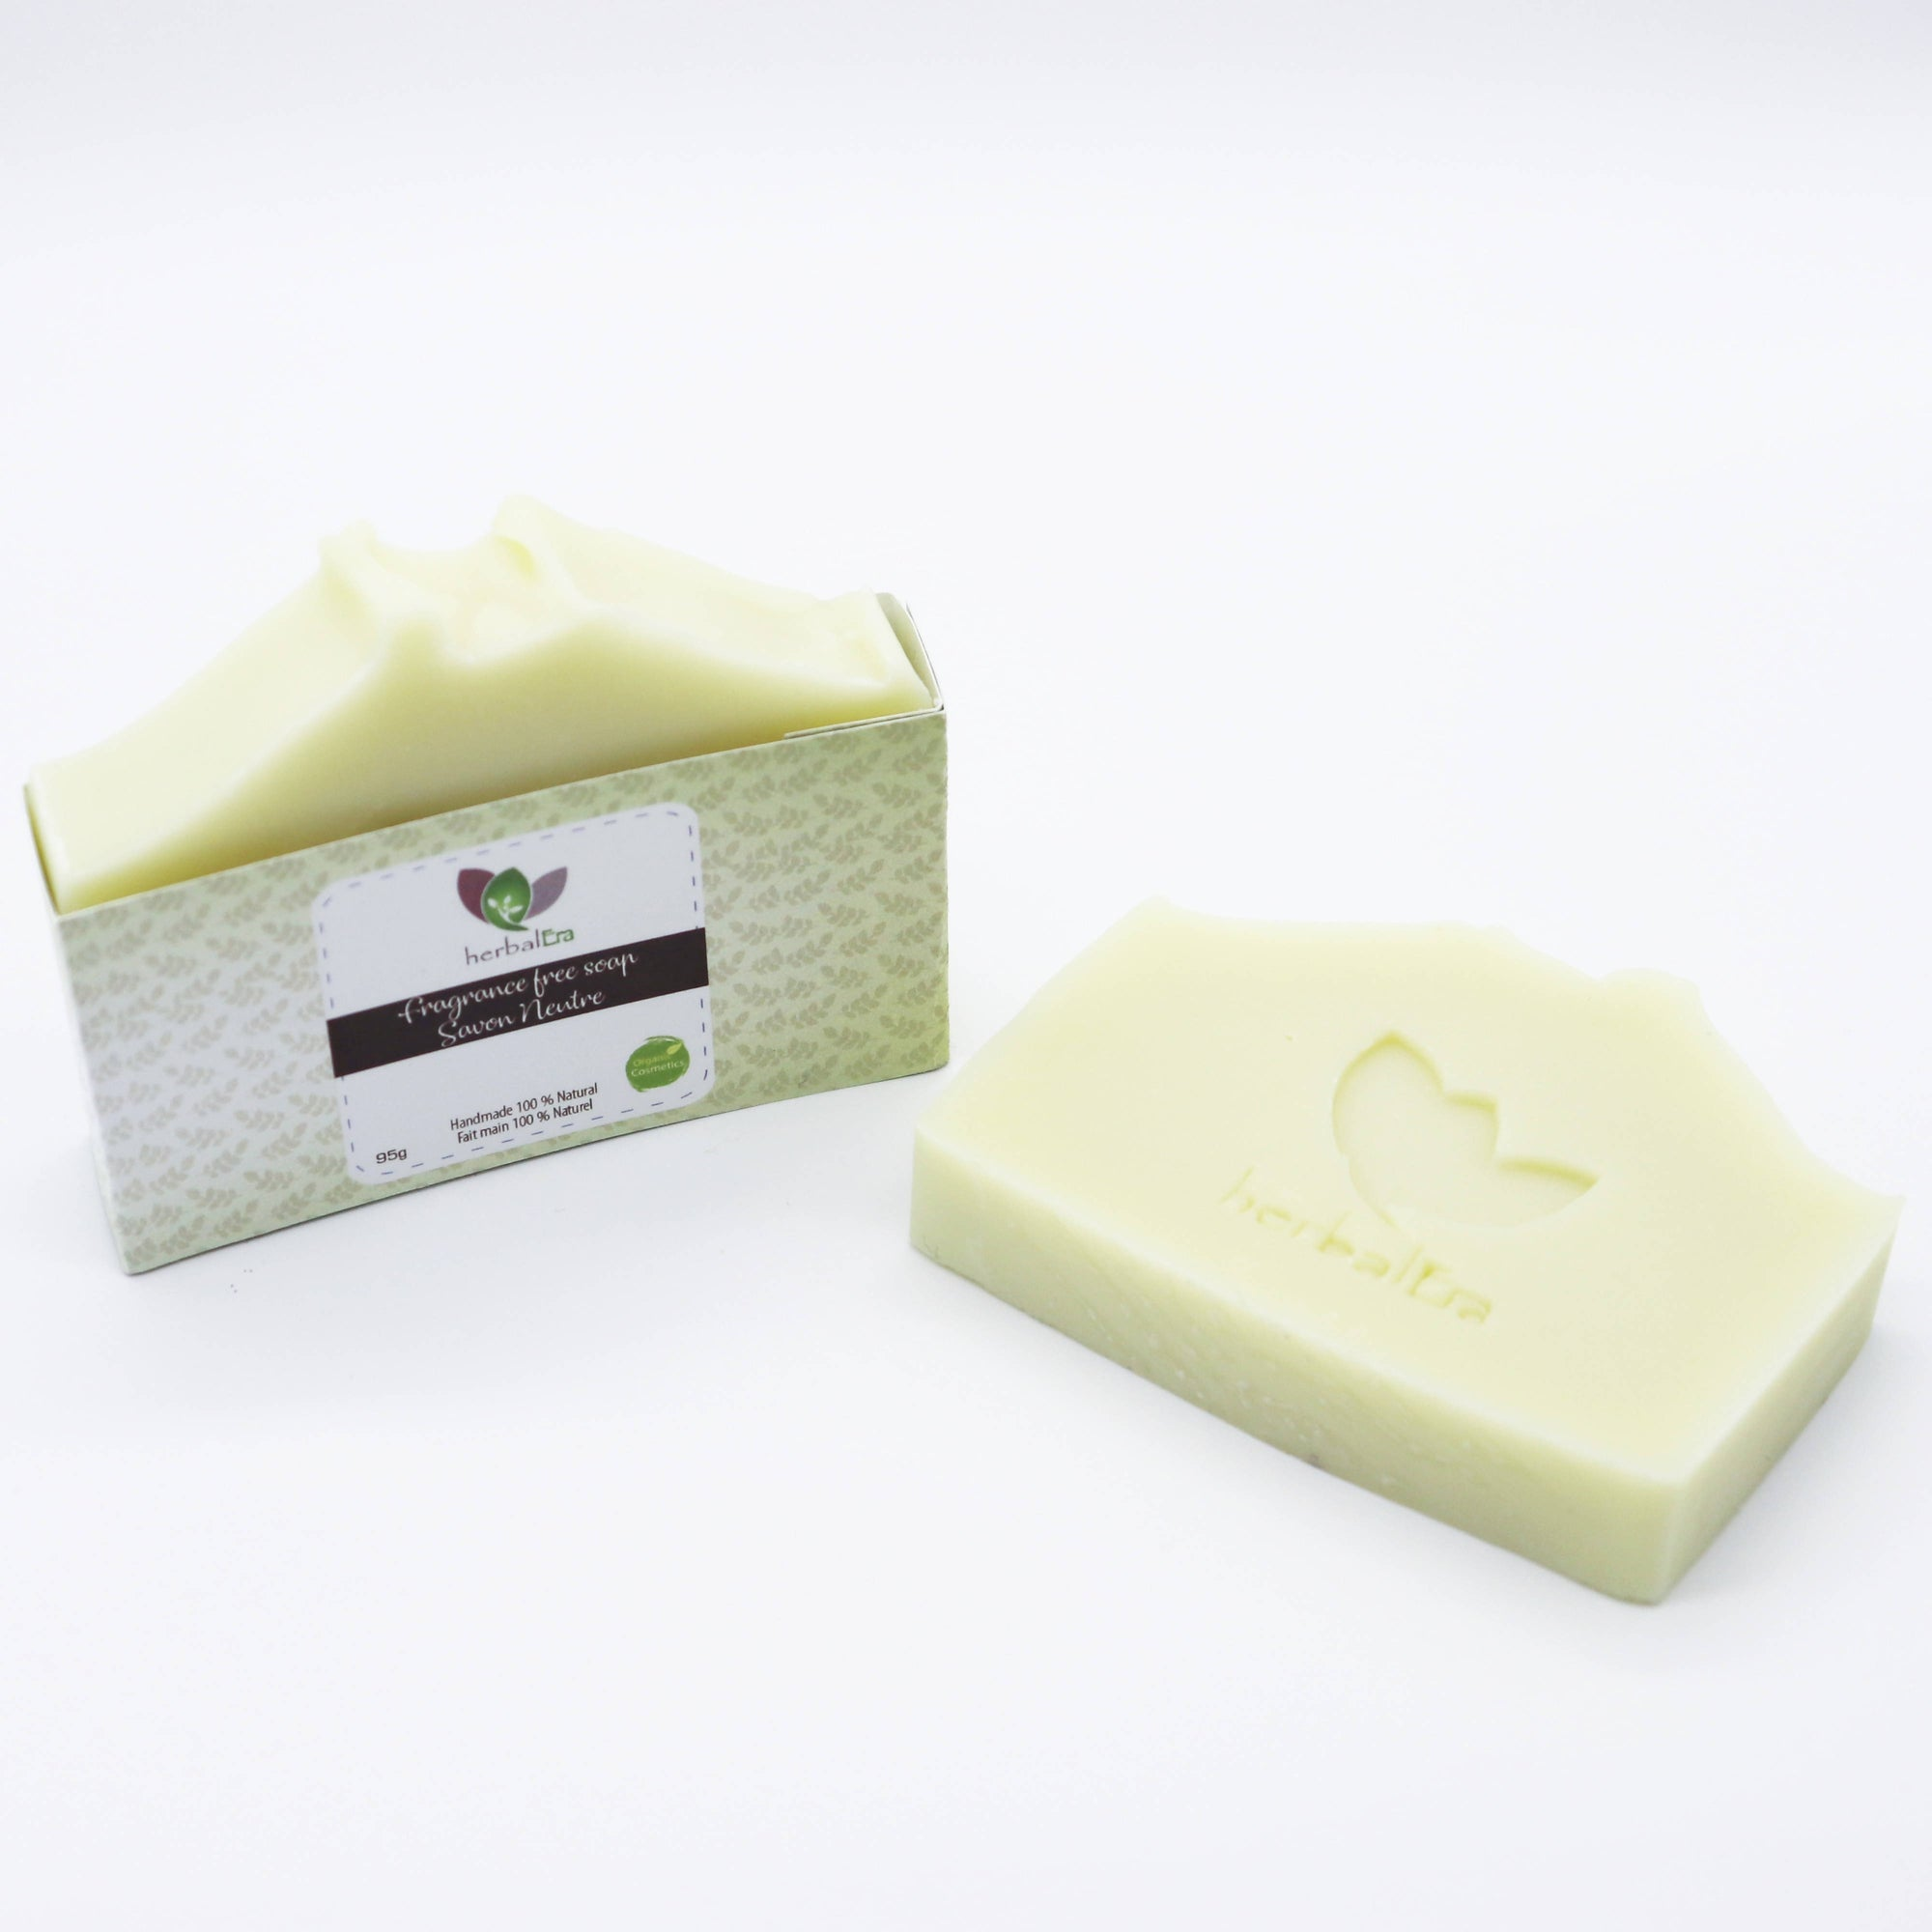 Fragrance free soap 95g (3,35oz)